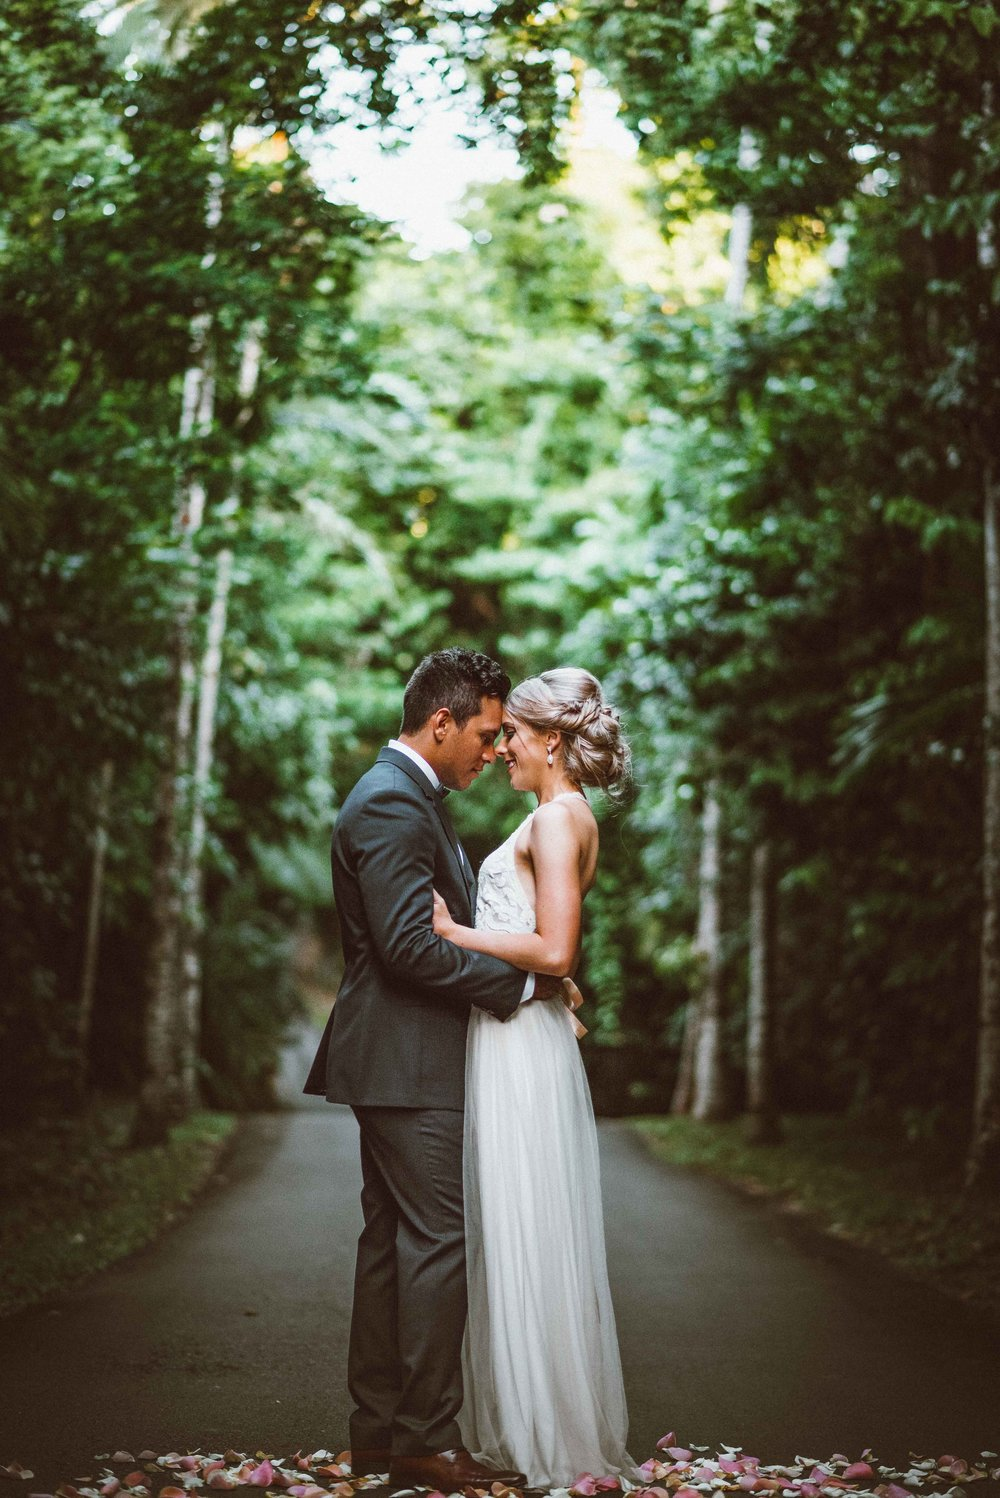 Blog - Michael + Megan-43.jpg